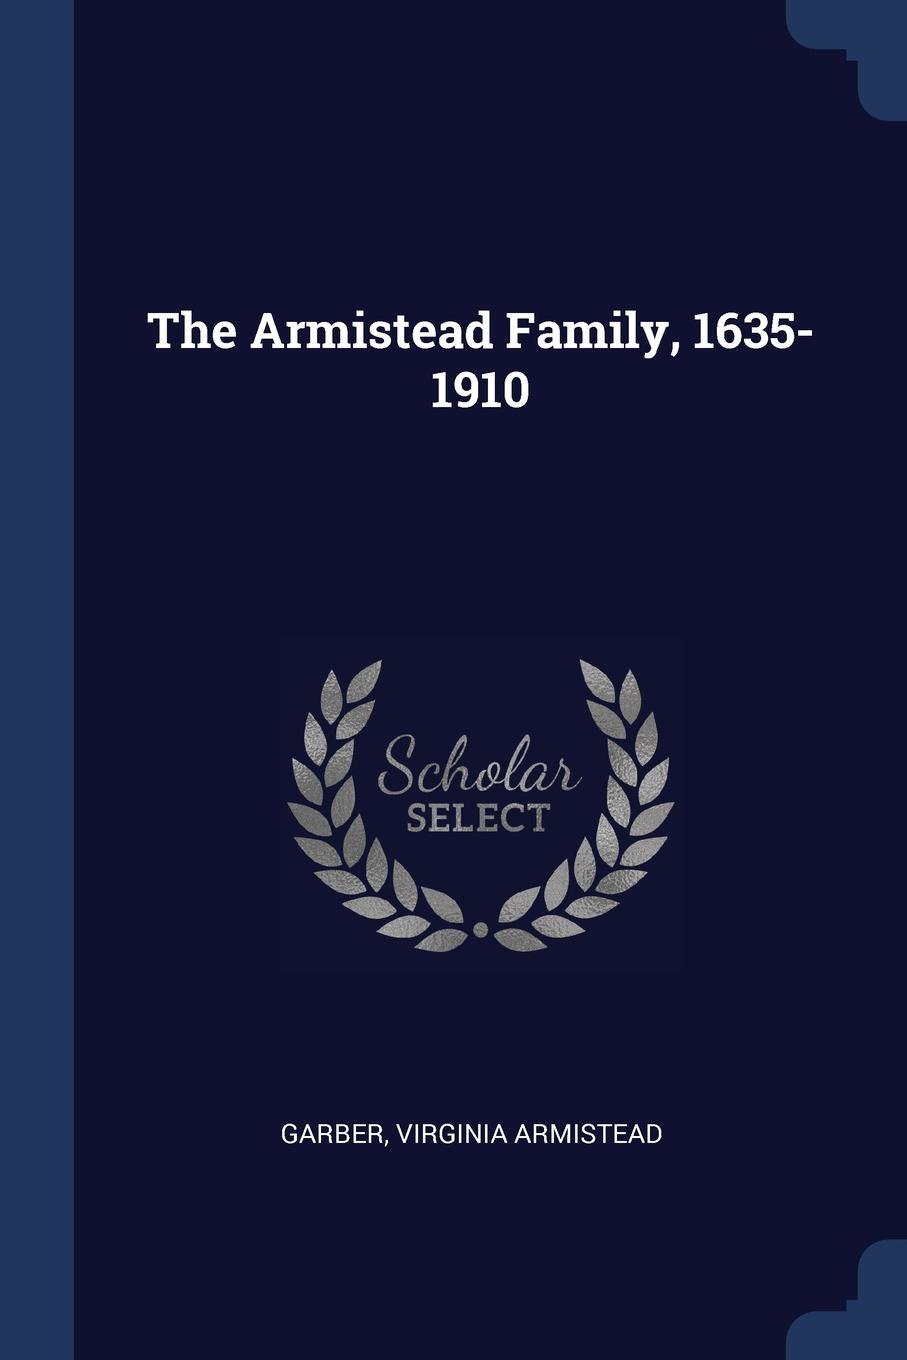 The Armistead Family, 1635-1910